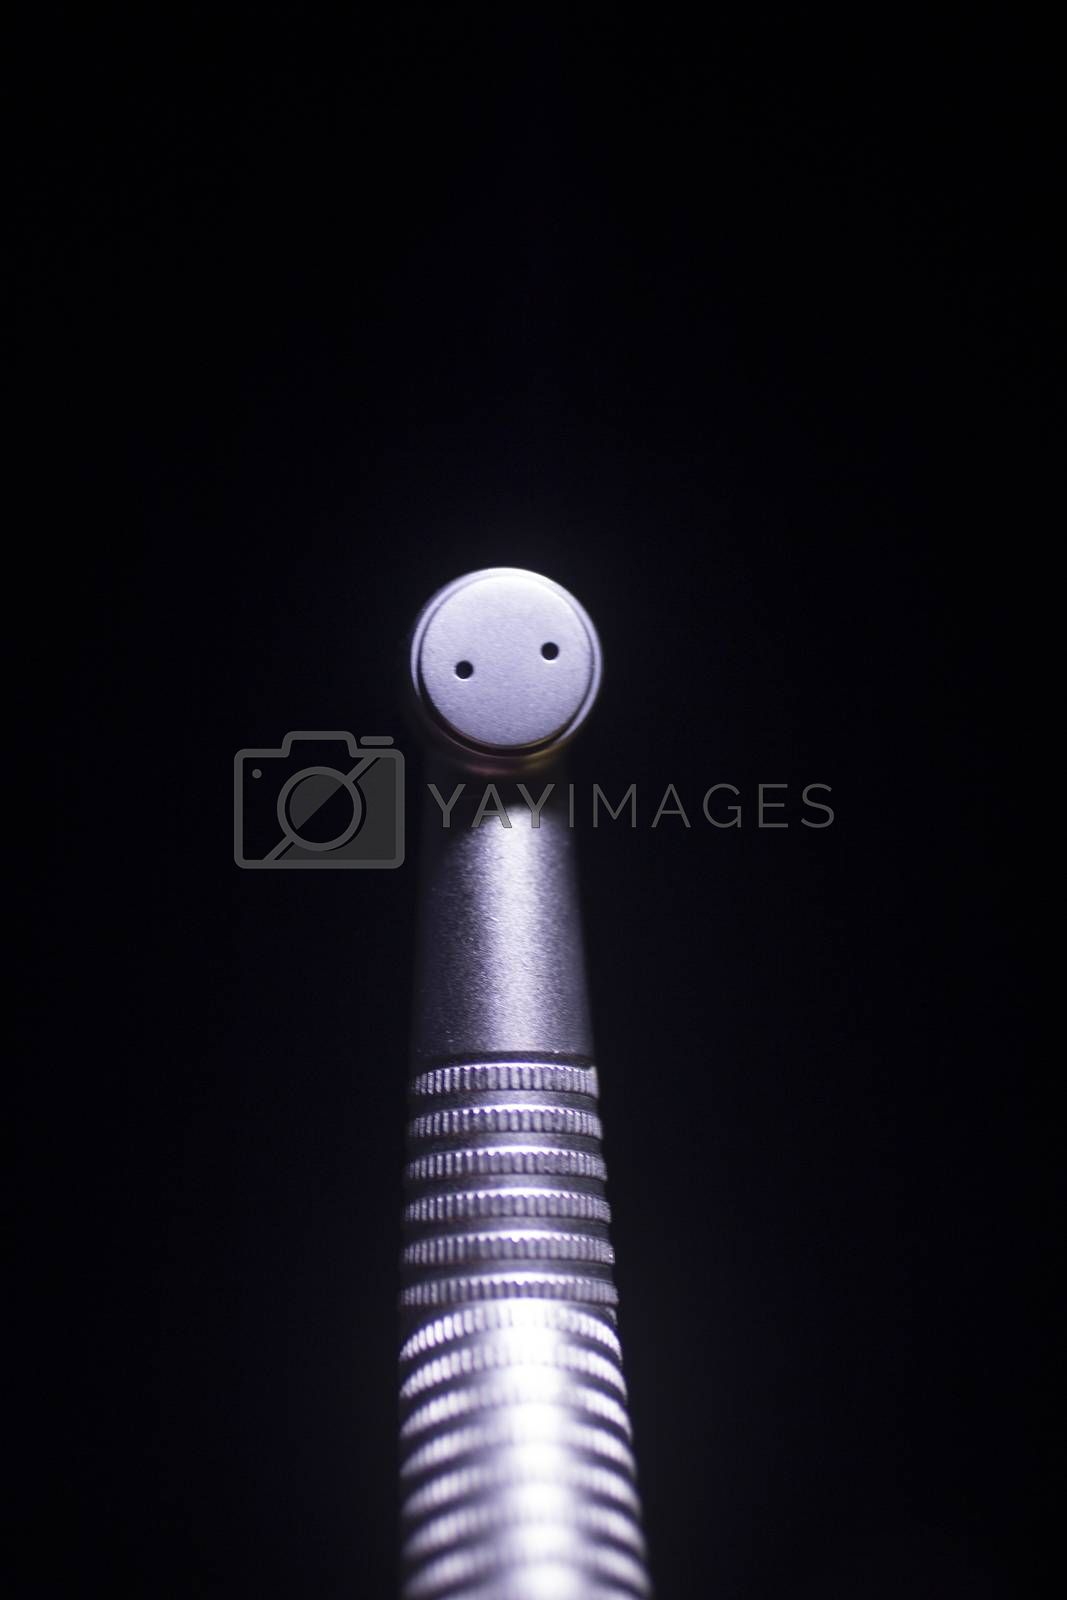 Rectangular vertical color close-up macro digital photo of dentists instrumentation dental tooth spray head against plain black studio background.